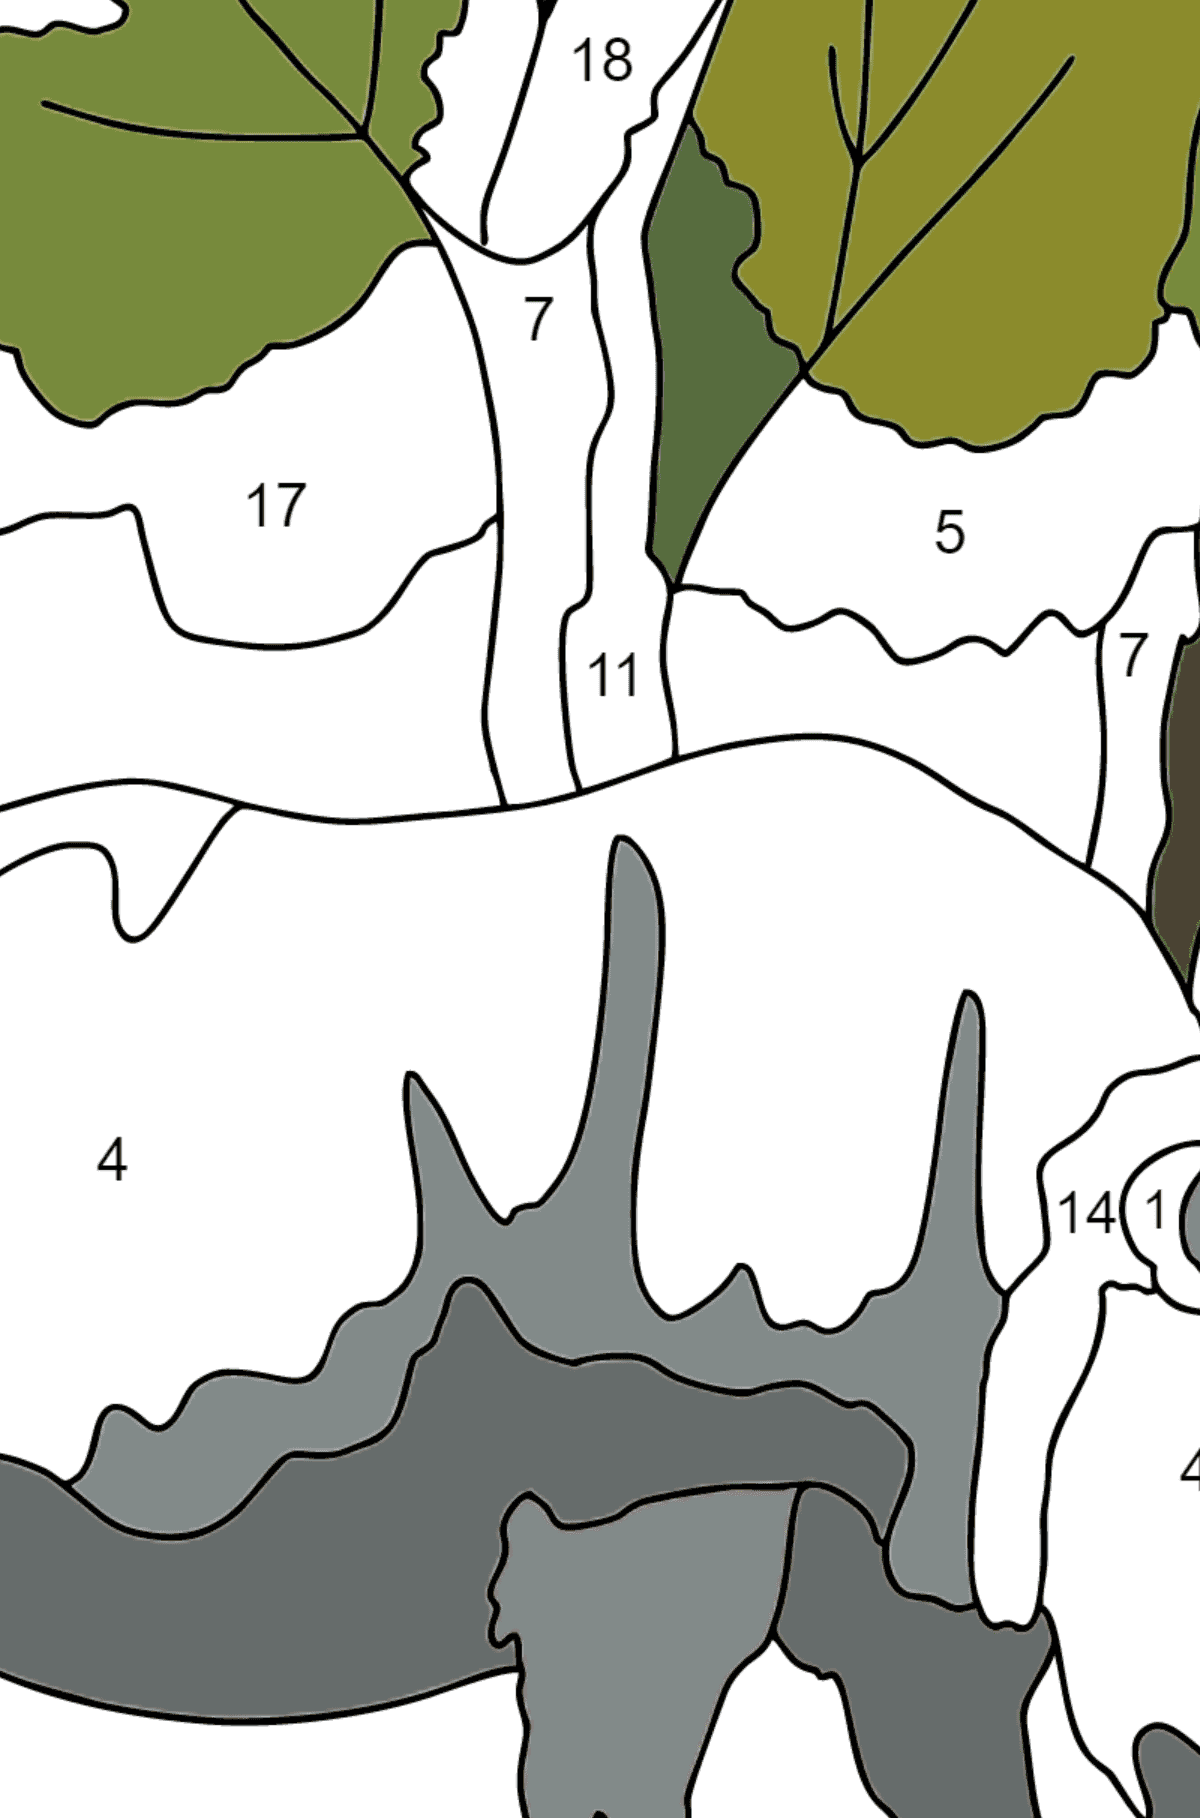 Coloring Page - A Rhino is Eating - Coloring by Numbers for Children